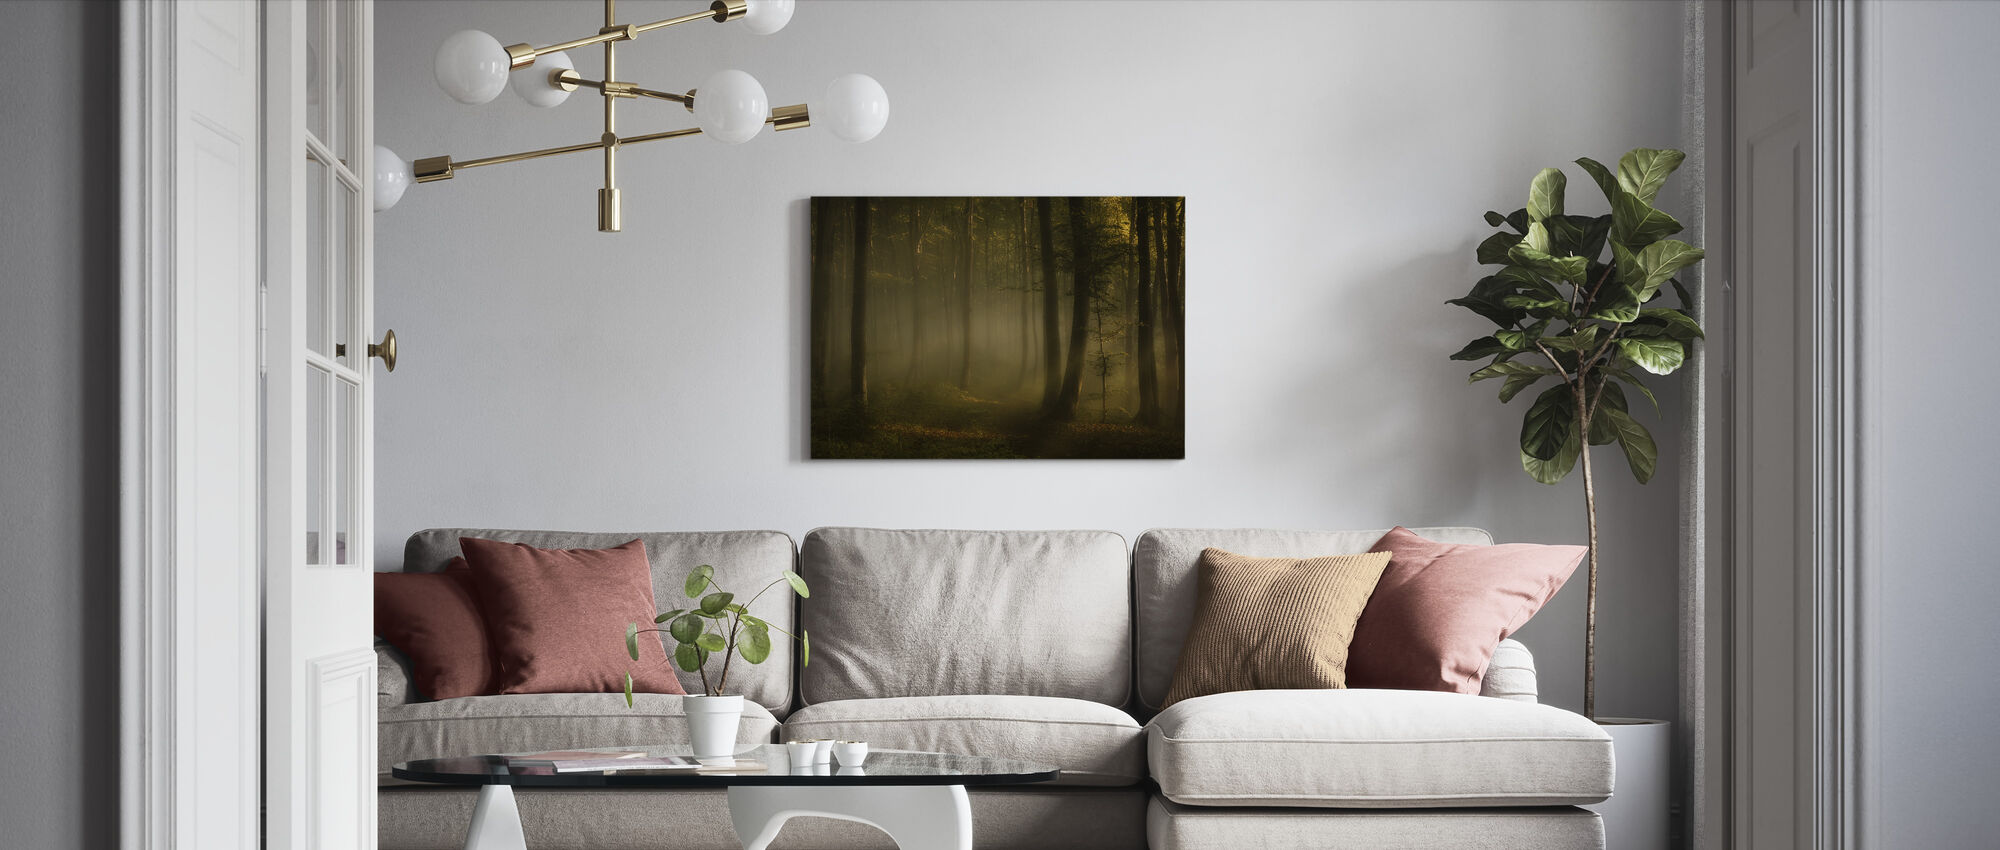 The Feel of Sunlight in the Morning - Canvas print - Living Room